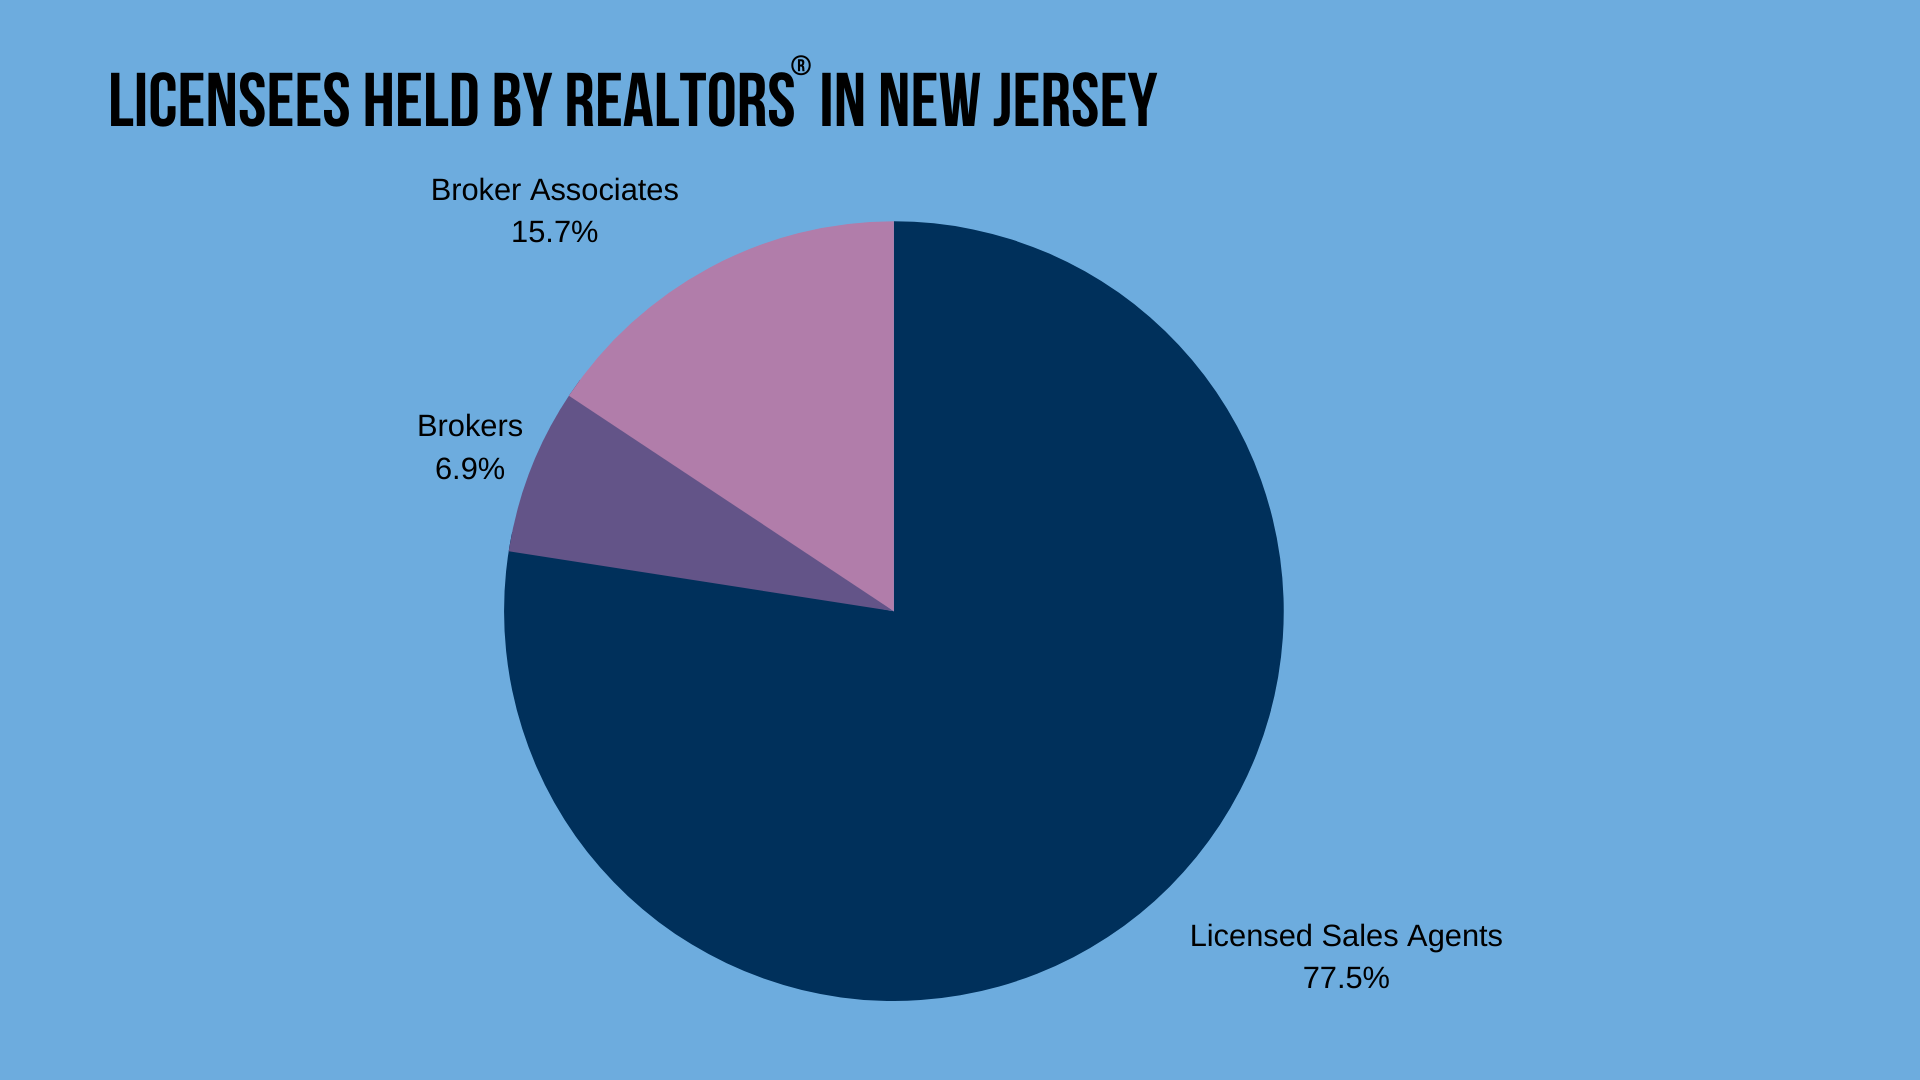 Licensees Held By Realtors in New Jersey